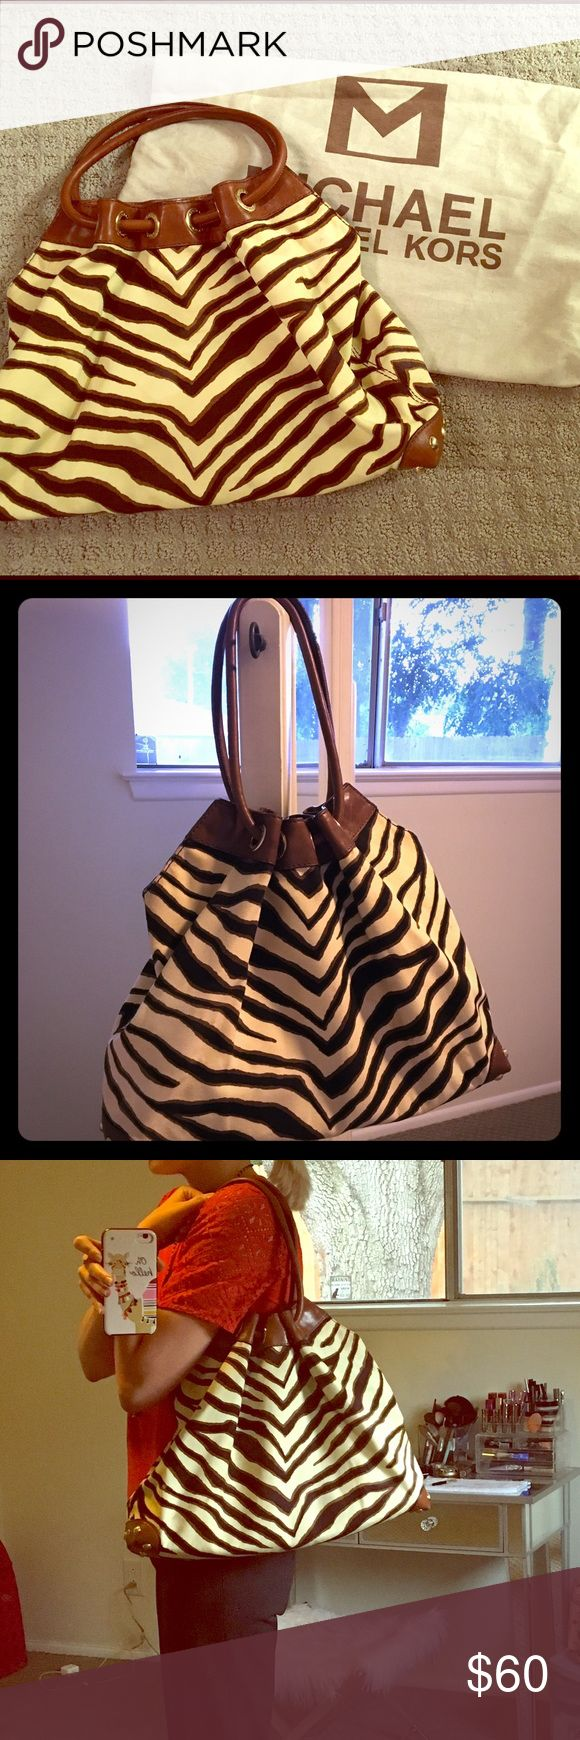 Michael Kors Joplin animal print purse Fun, unique canvas and leather shoulder bag. It has some stains on the canvas, but leather is in good condition. Please see pictures. Comes with dust bag. Offers made using the OFFER button will be considered. MICHAEL Michael Kors Bags Shoulder Bags